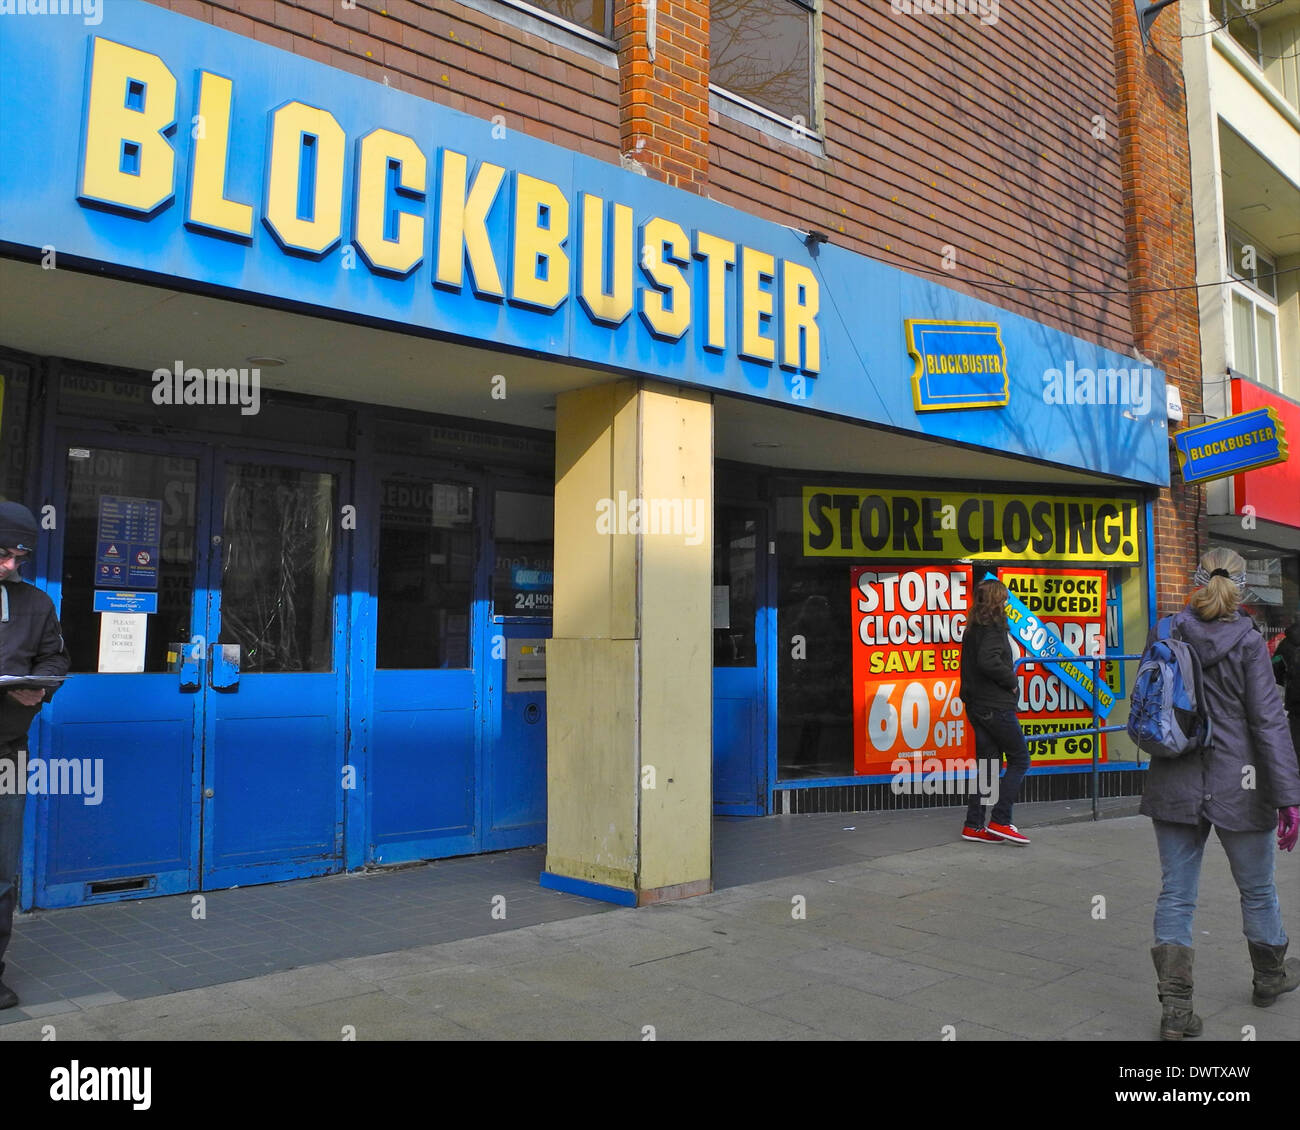 Blockbuster video store closing victim store front shopfront EDITORIAL USE ONLY in Bognor Regis - Stock Image